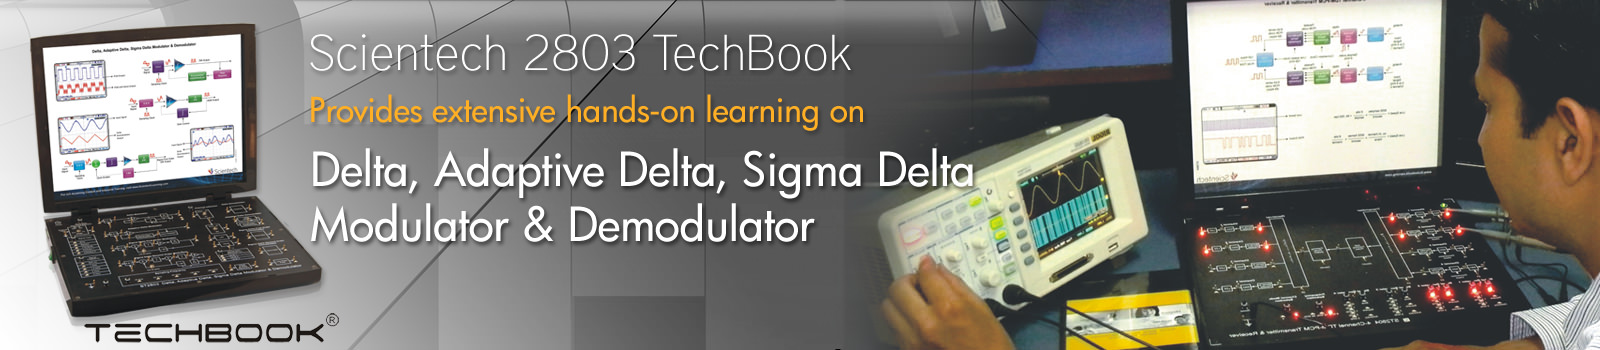 Delta, Adaptive Delta, Sigma Delta Modulator and Demodulator